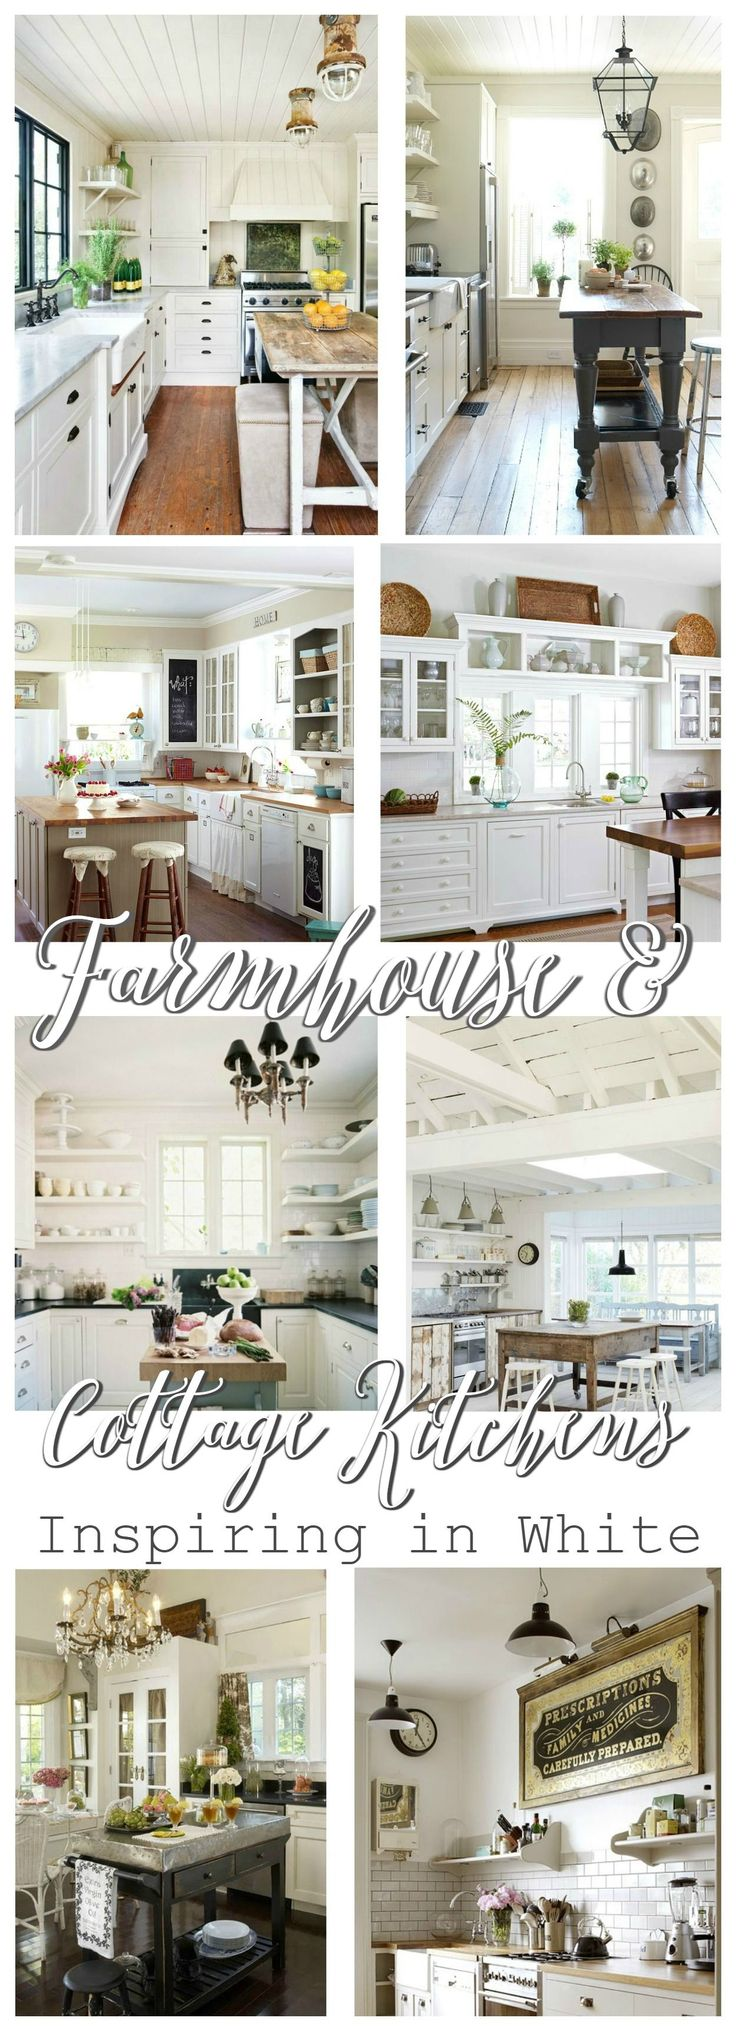 Farmhouse Cottage Kitchens at foxhollowcottage.com - Ideas for decorating, inspiring in White!